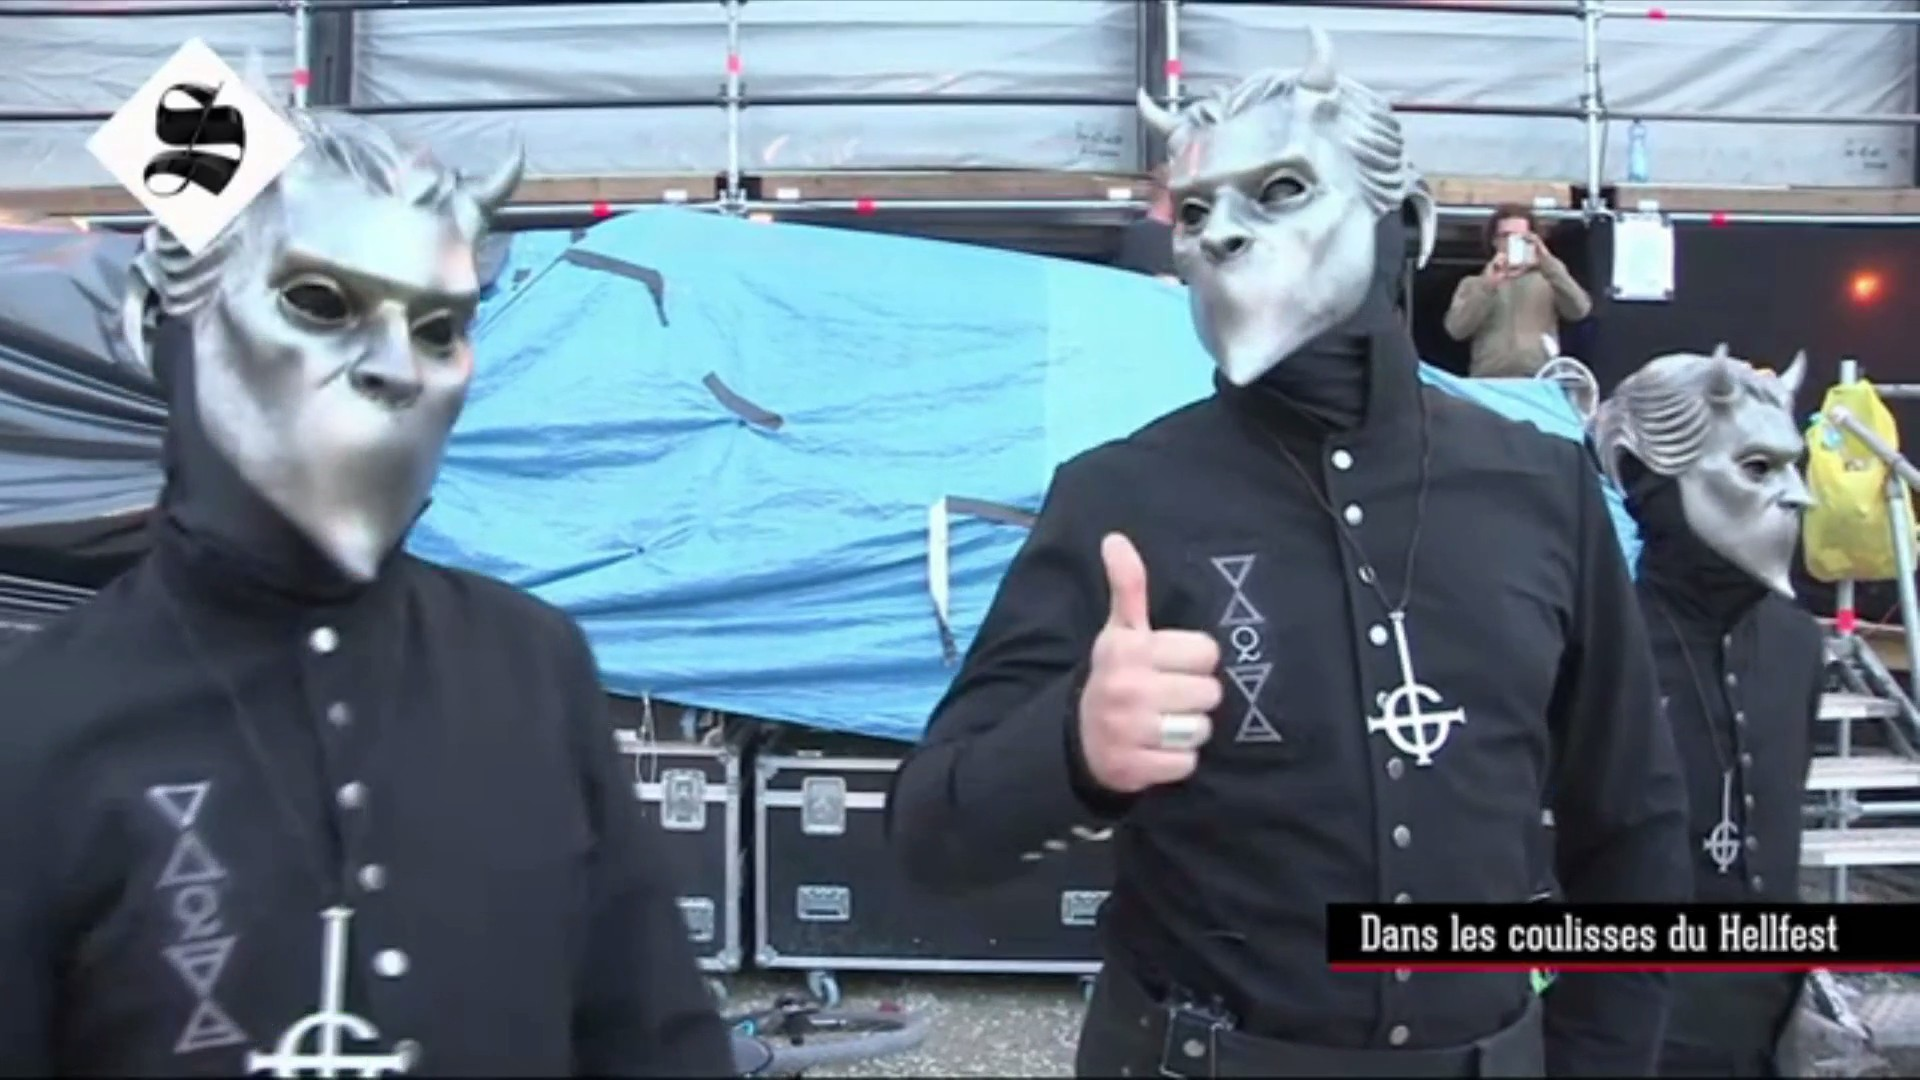 Behind The Scenes At Hellfest